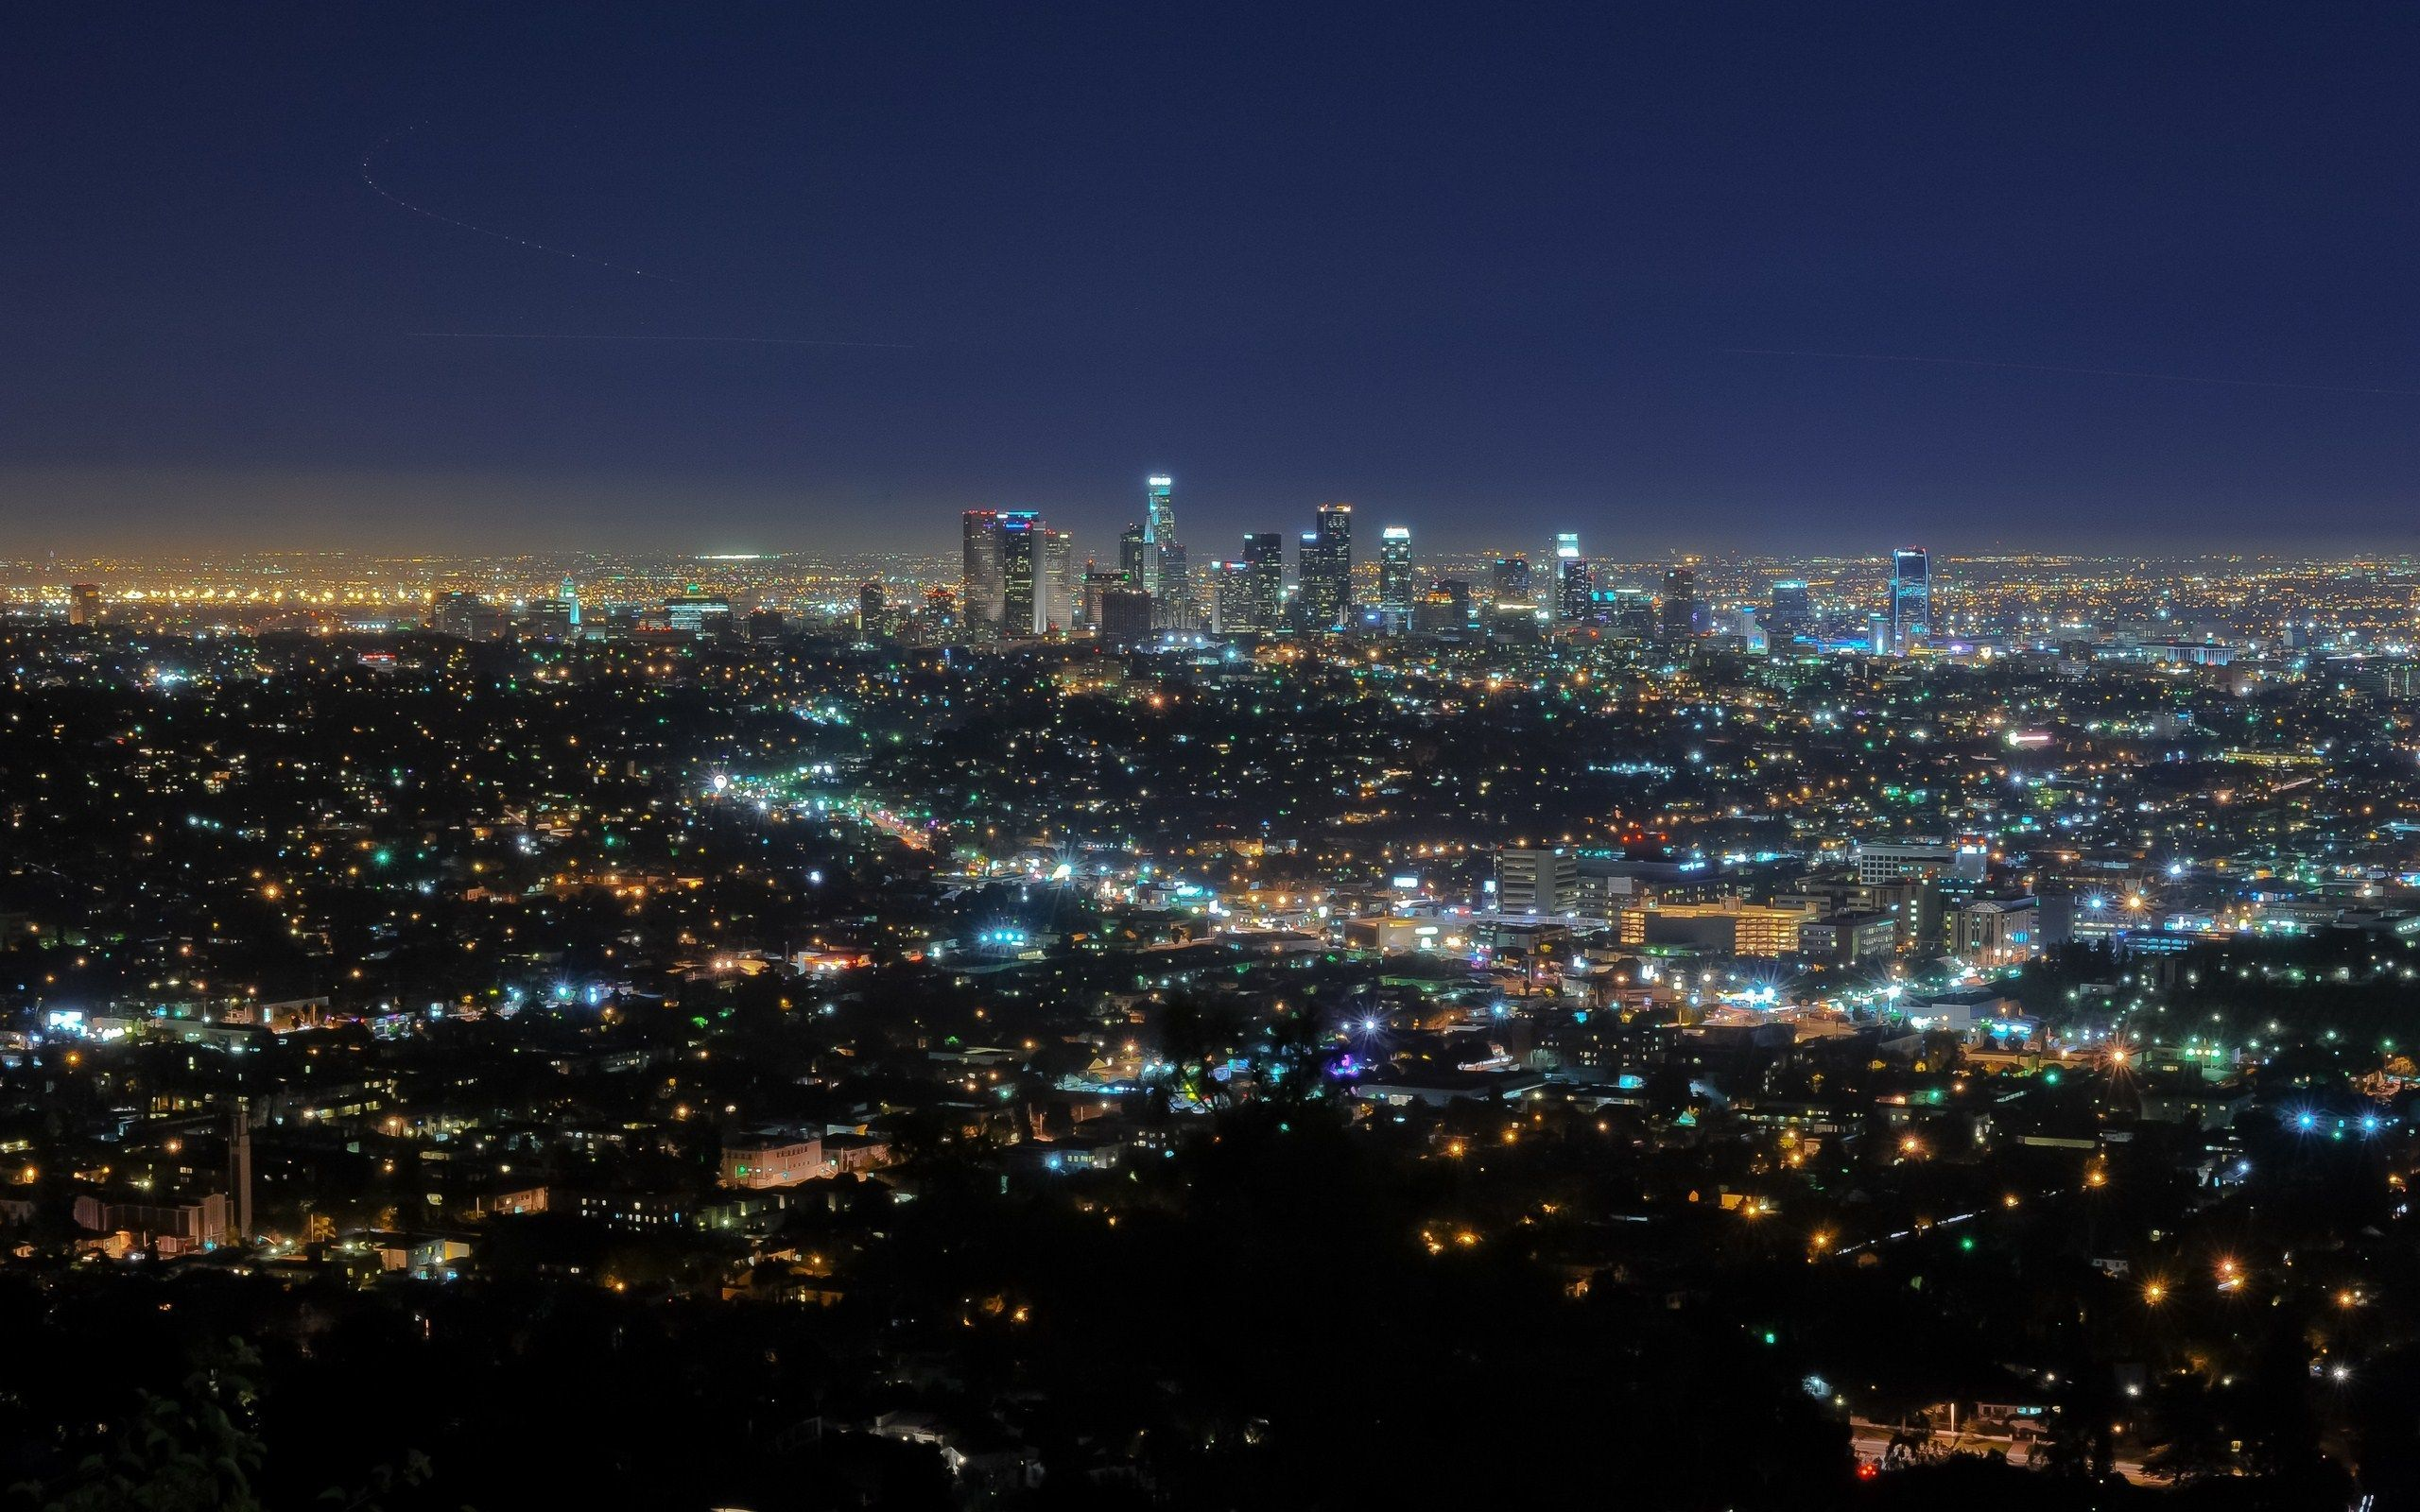 2560 X 1600 Px Quality Cool Los Angeles City Wallpaper By Jaz Blare For Tw Com California Wallpaper Los Angeles Pictures Los Angeles Wallpaper